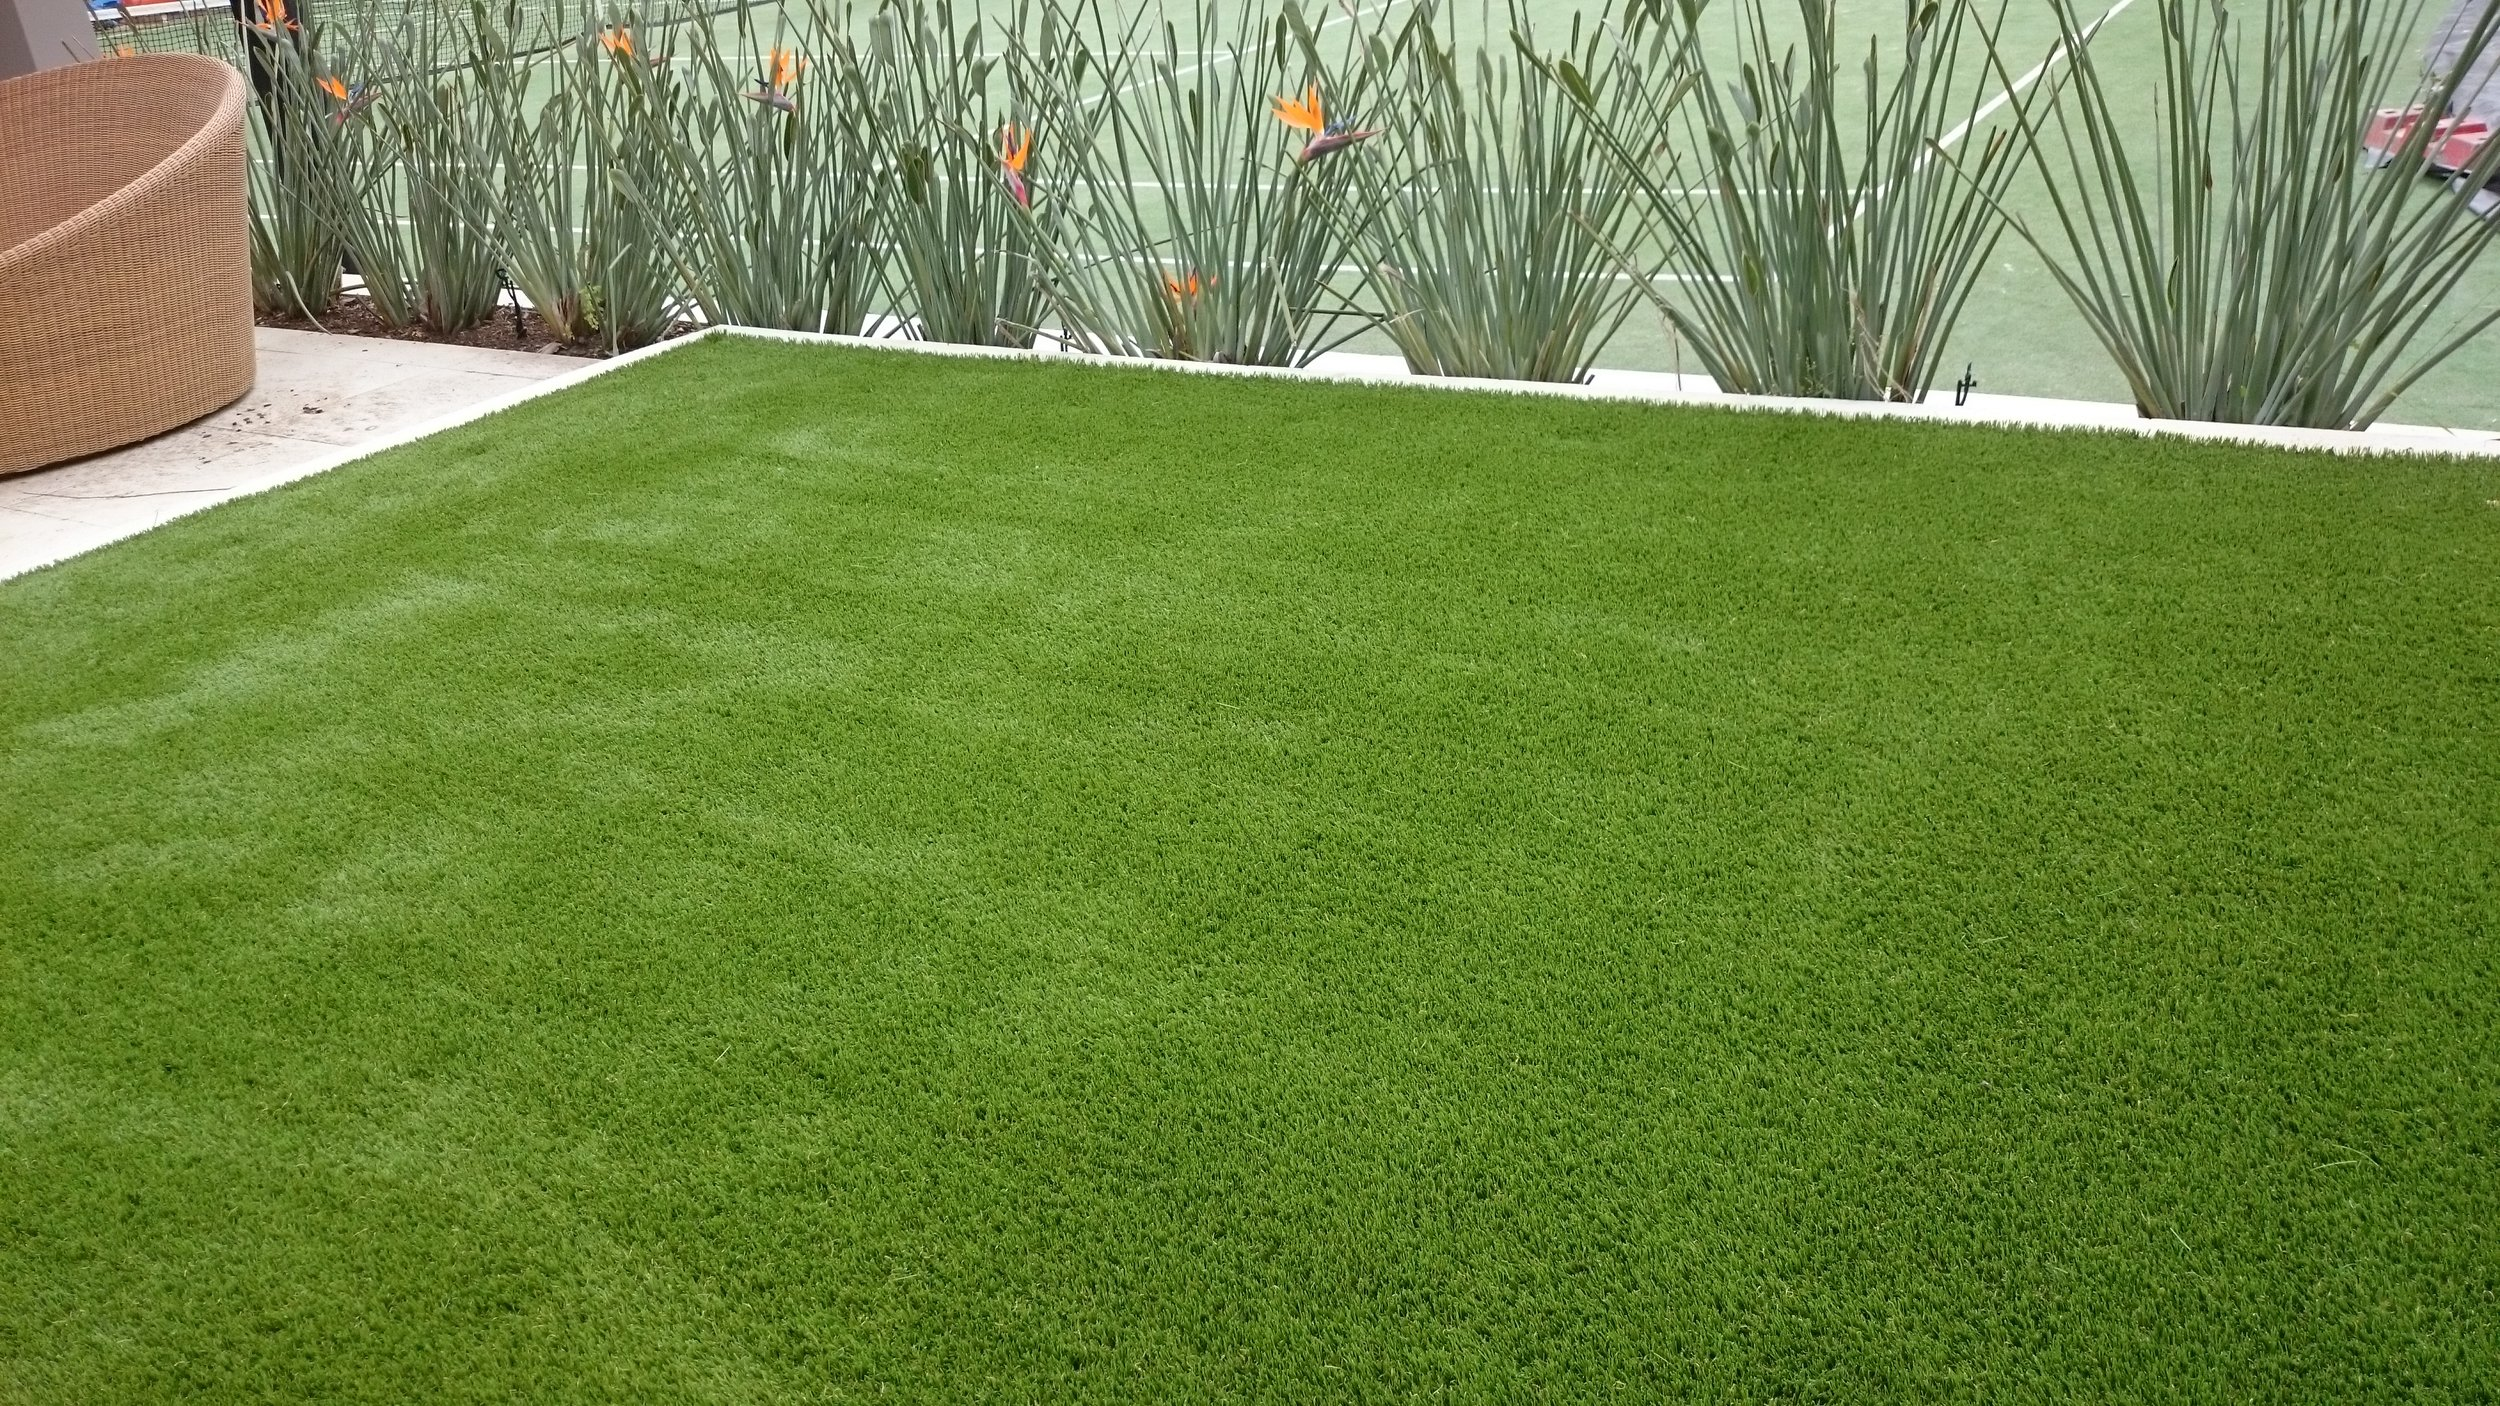 quality fake grass sydney#premium synthetic grass sydney#green look#royal grass